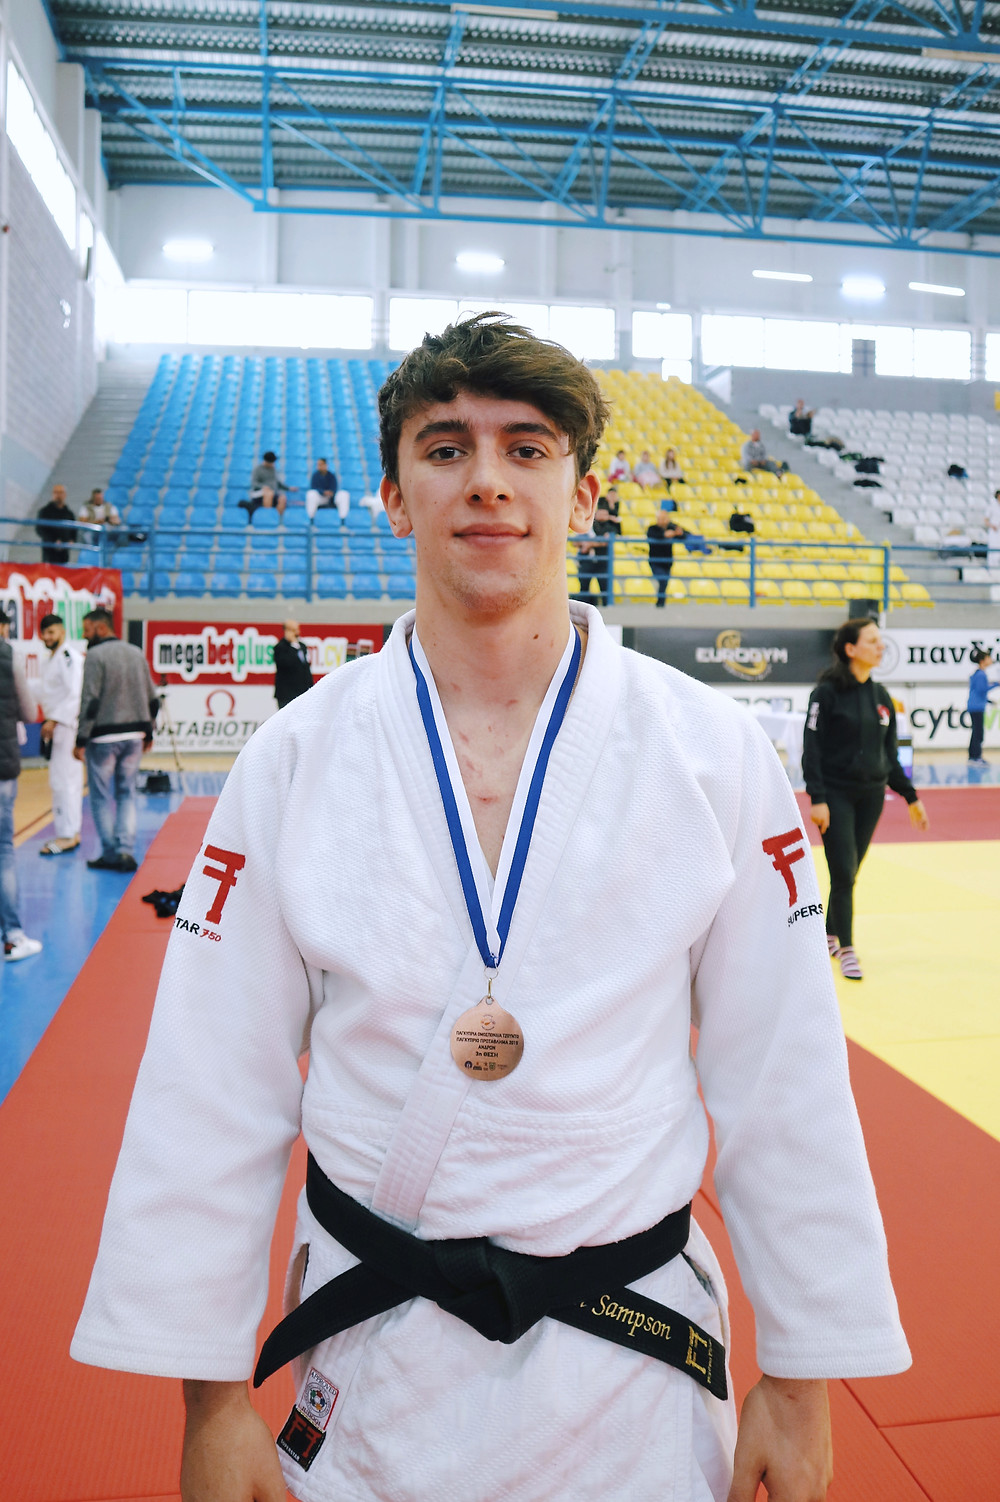 Sam Sampson with his medal